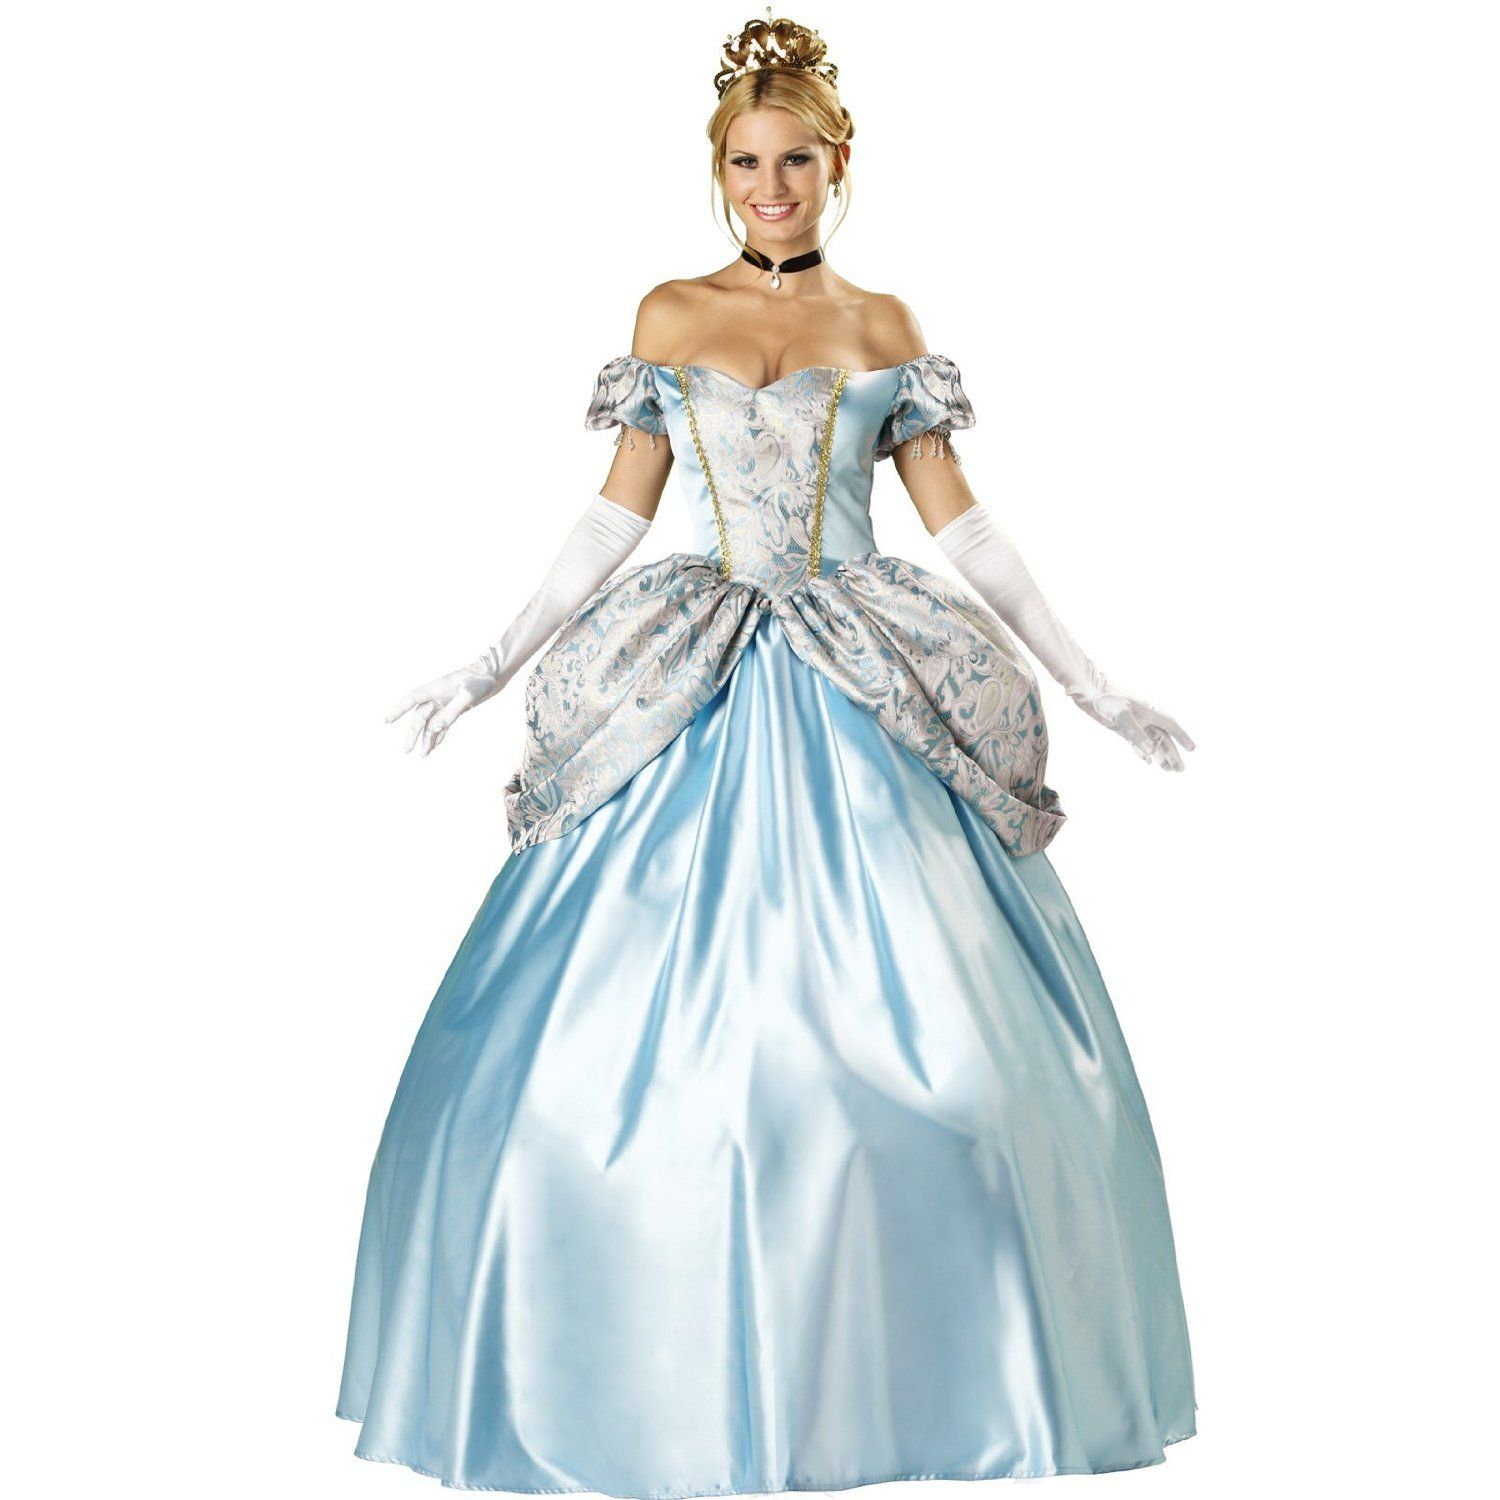 adult cinderella costume i wanna do this so bad and my boyfriend could be prince - Prince Charming Halloween Costumes